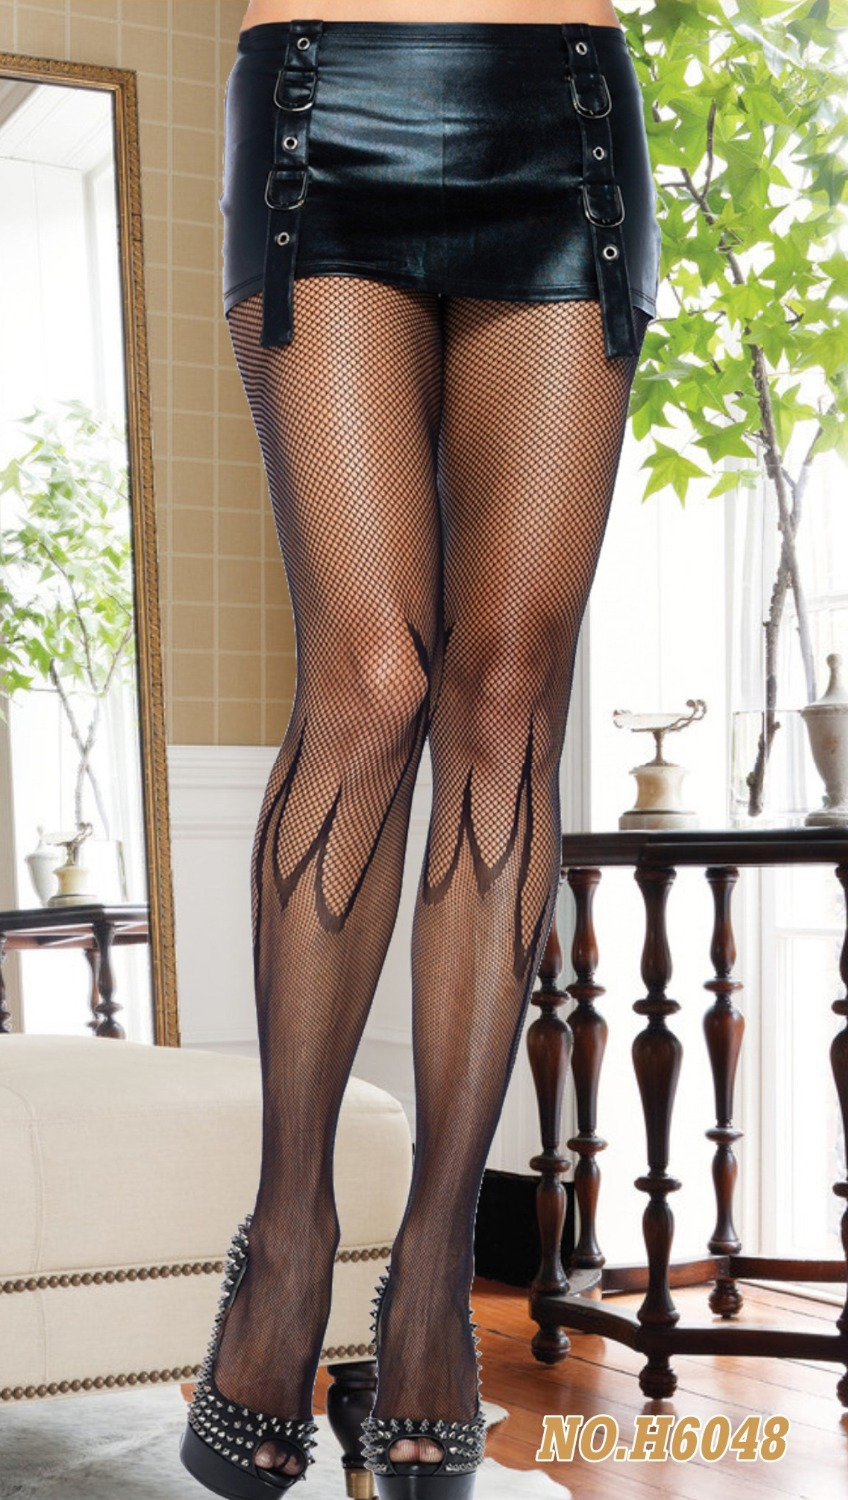 TITIVATE New Women Mock Suspender Tights, Elegant Soft And Comfortable Tights Highly Fashionable Stockings Patterned Pantyhose